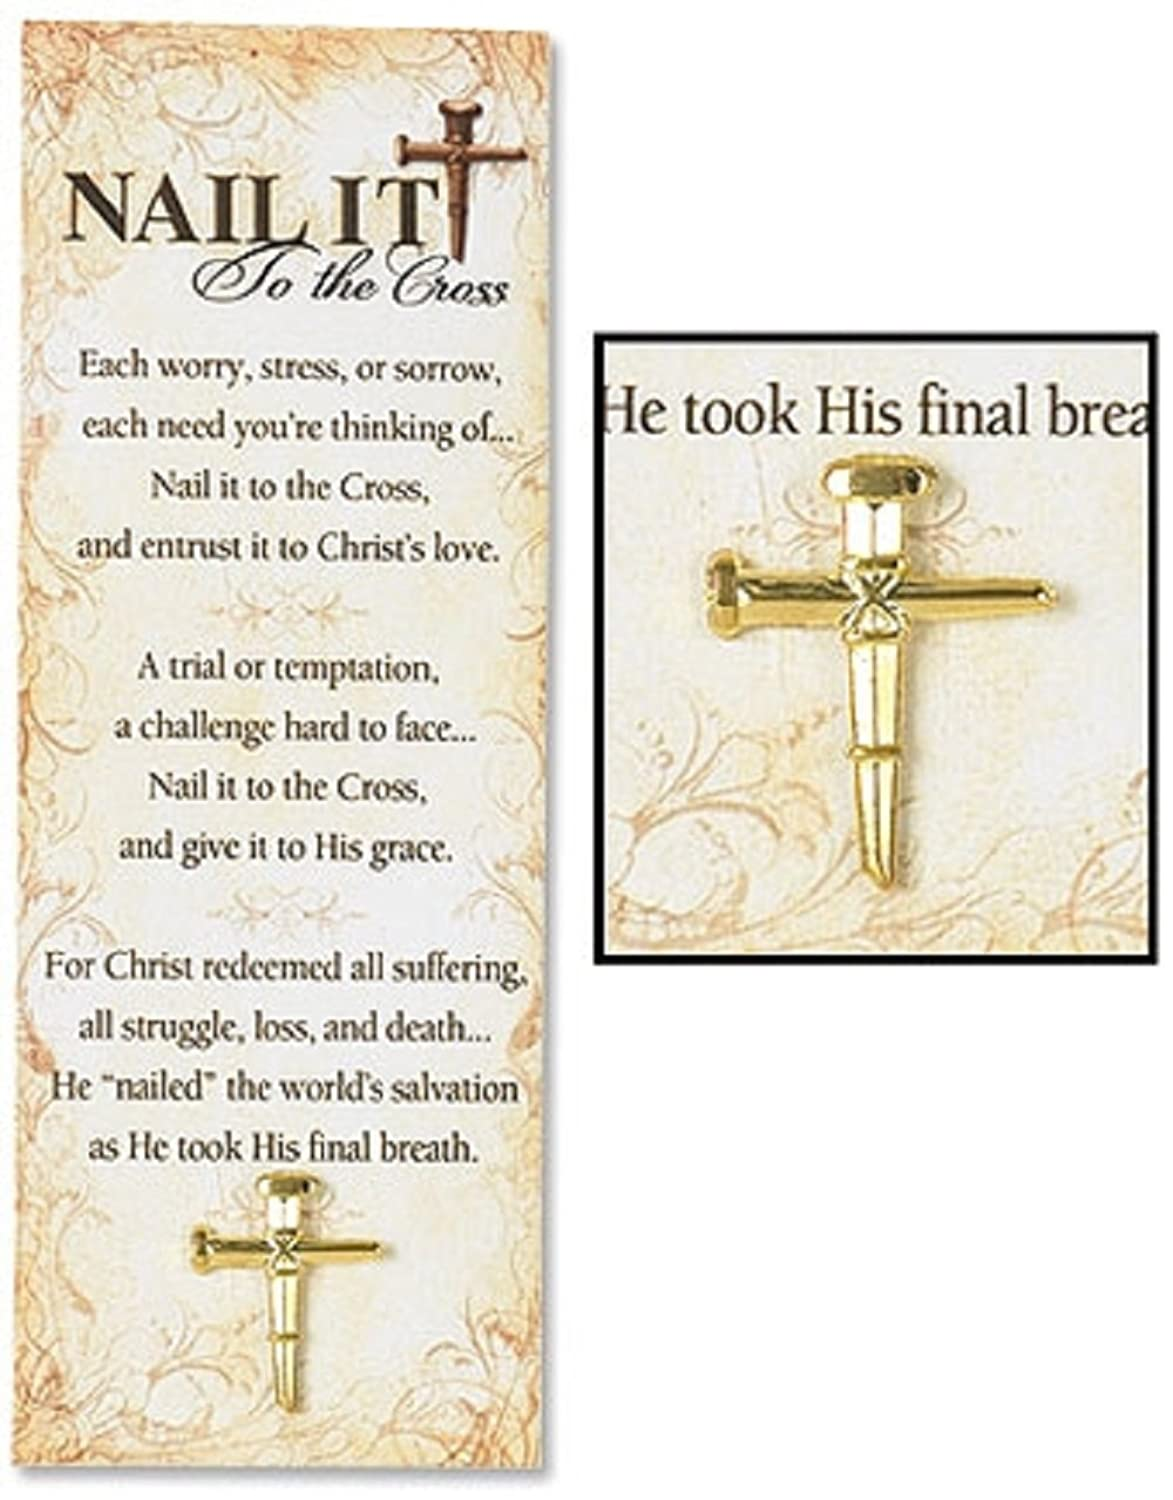 Amazon.com: 12PC Nail It To the Cross Lapel Pin with Bookmark: Jewelry